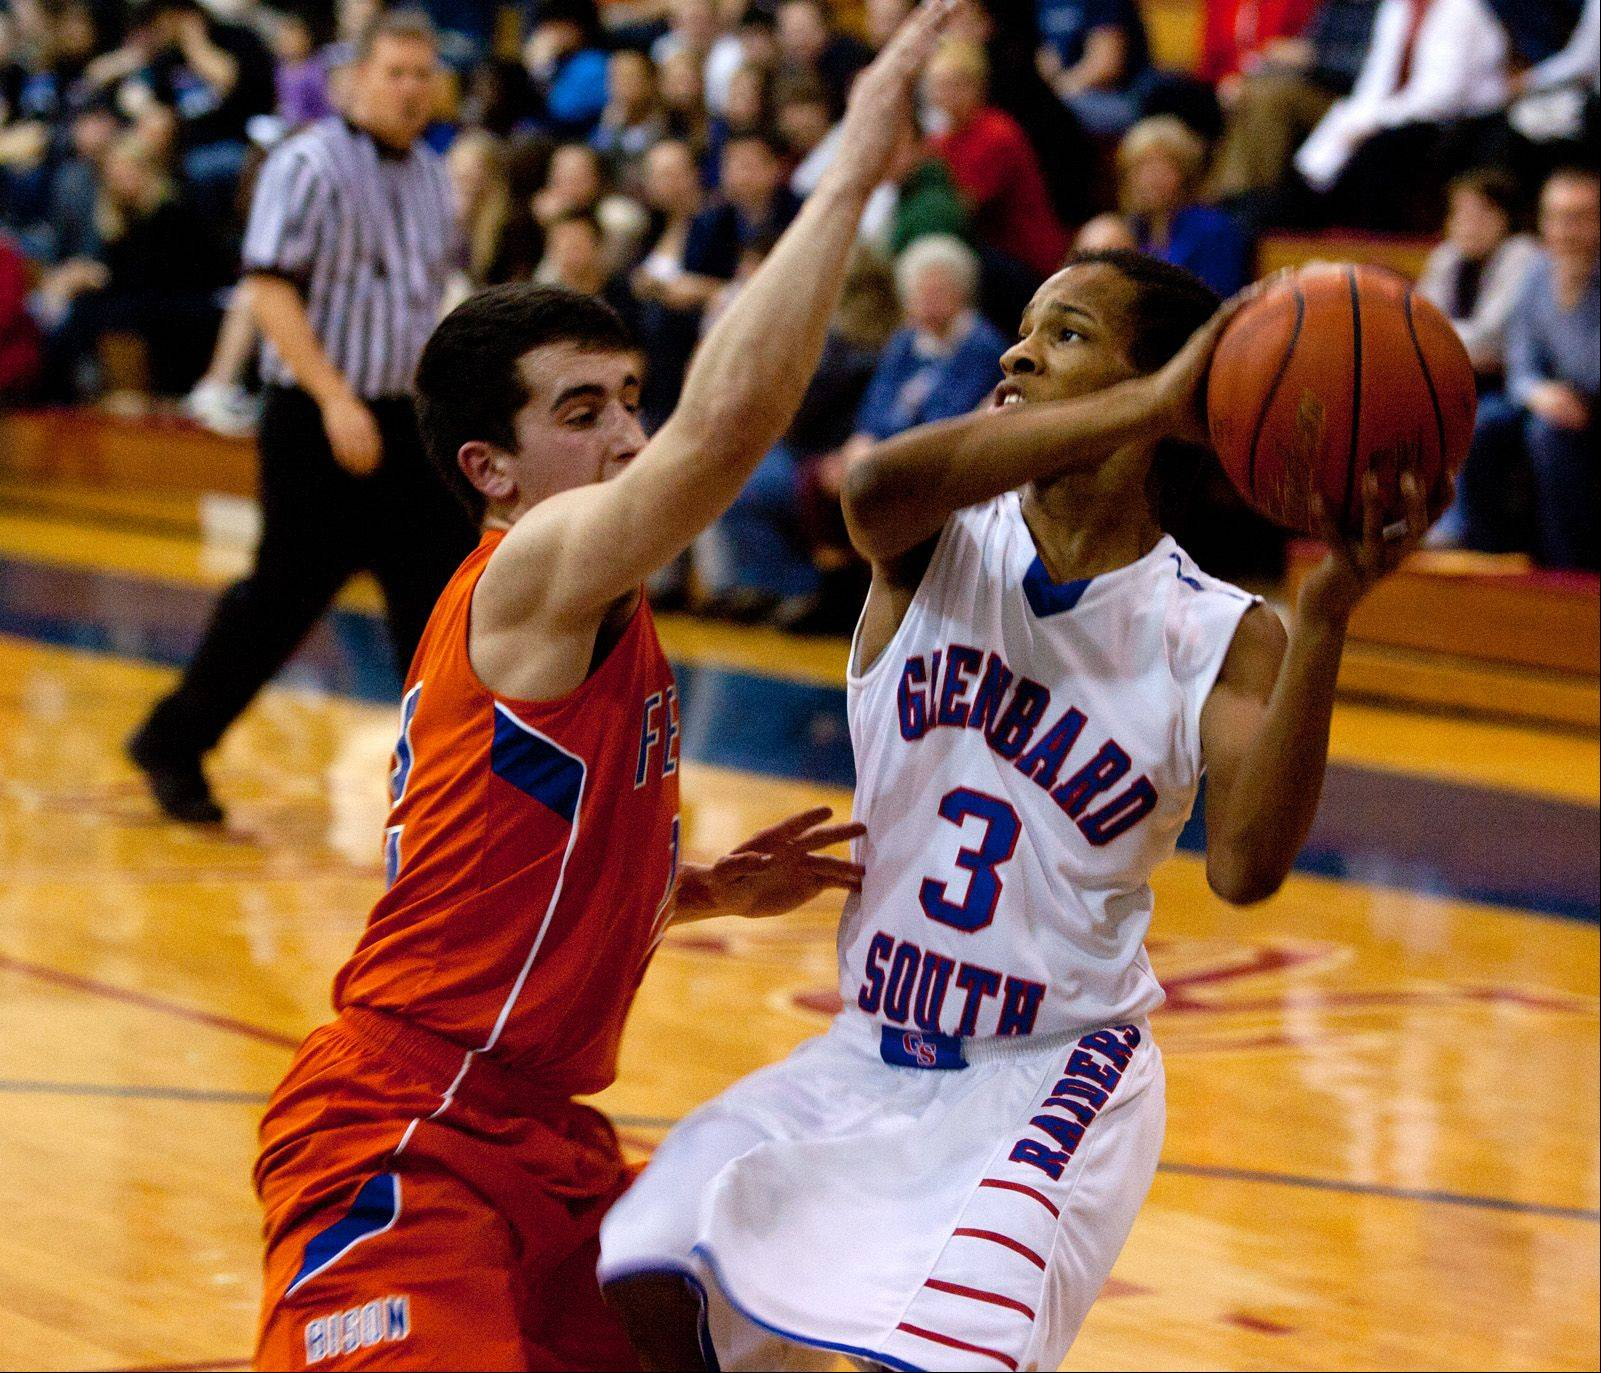 Glenbard South's Chaun Rickette (3), eyes the basket for a pair of his 16 first quarter points against Fenton.